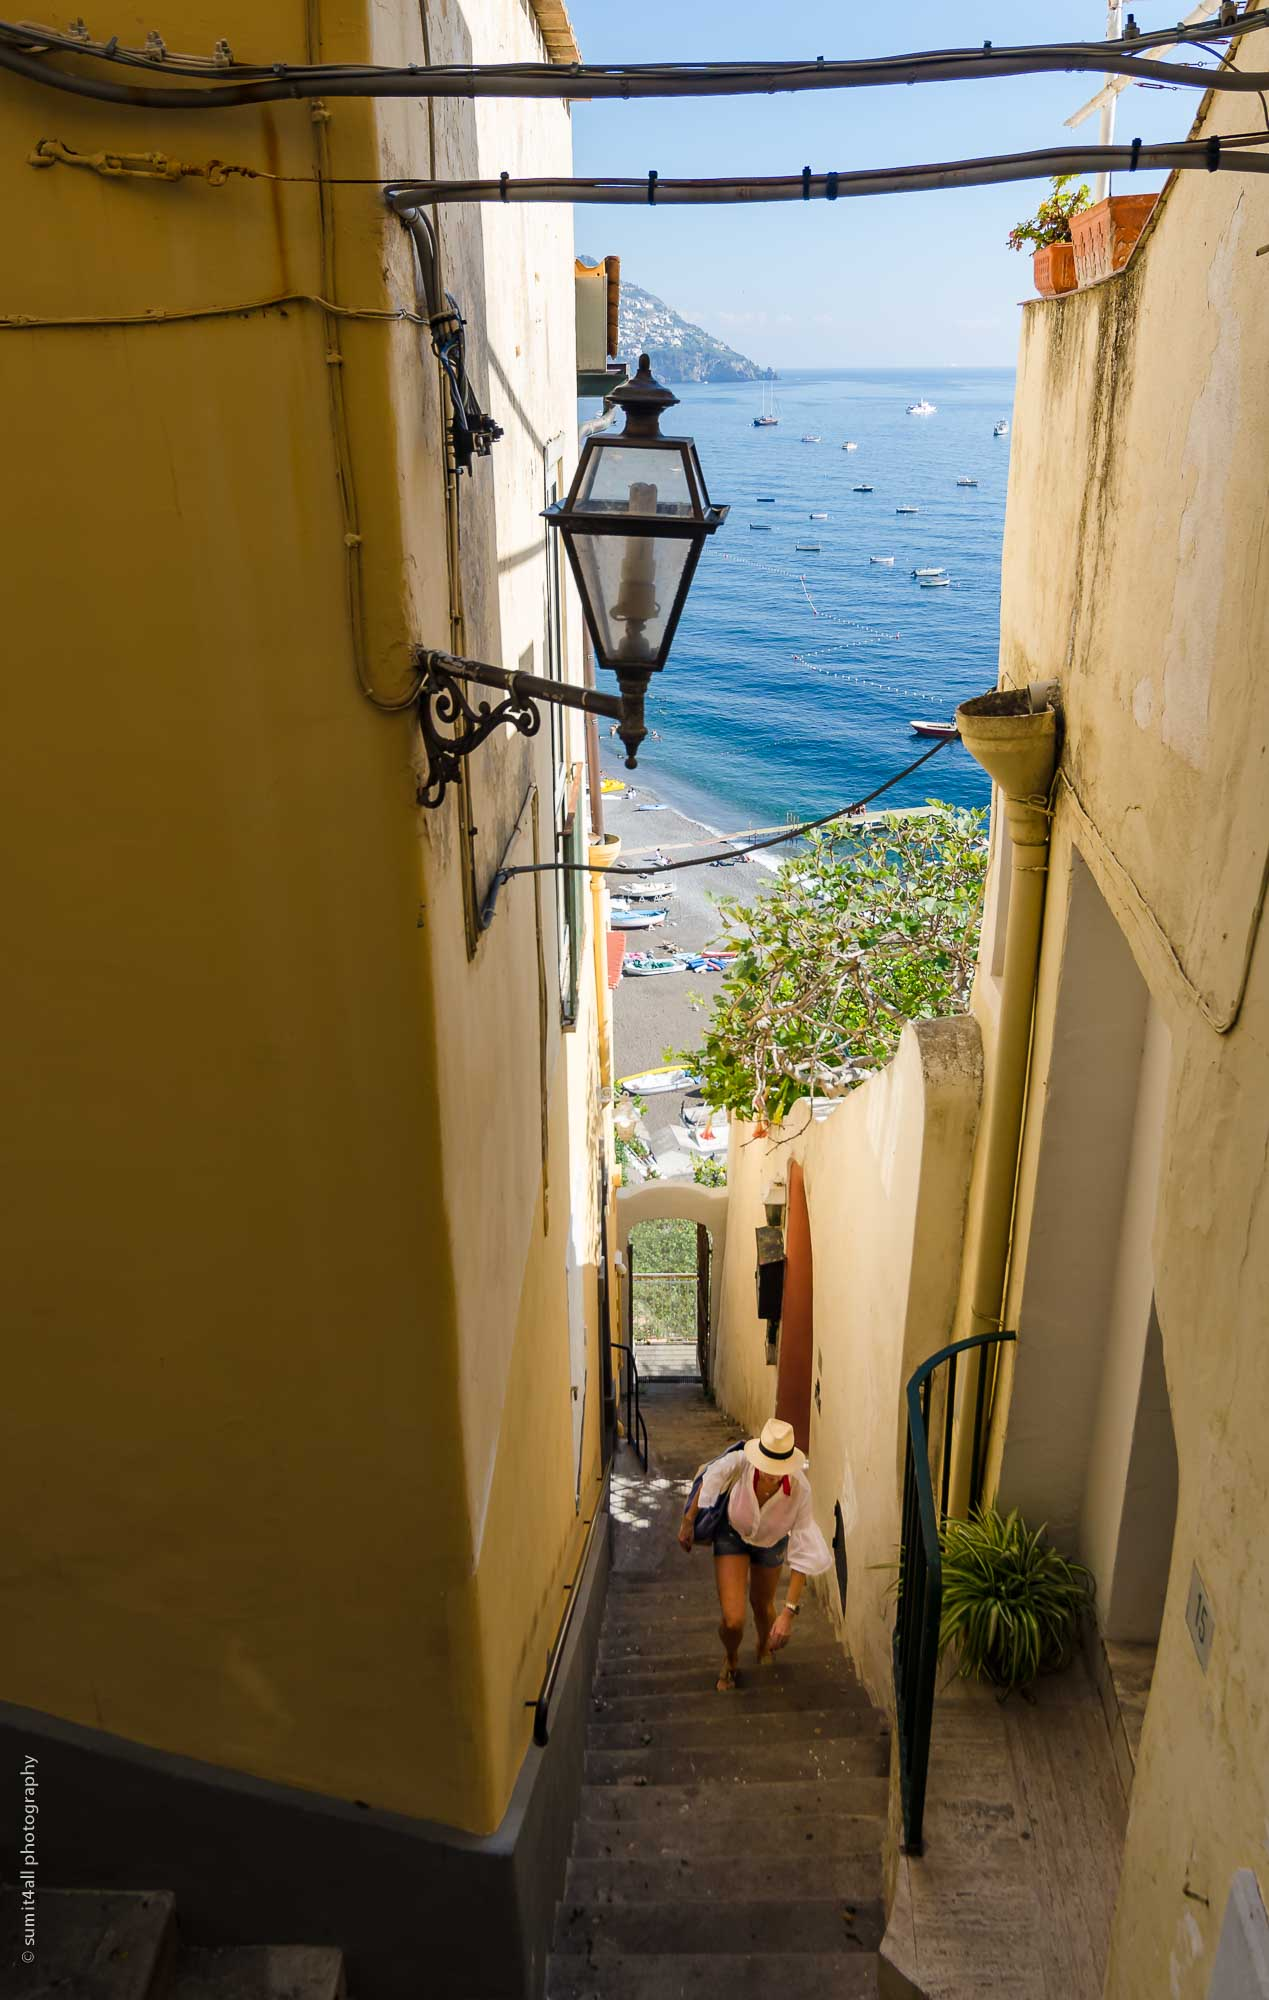 Steep Stairs in Positano, Italy